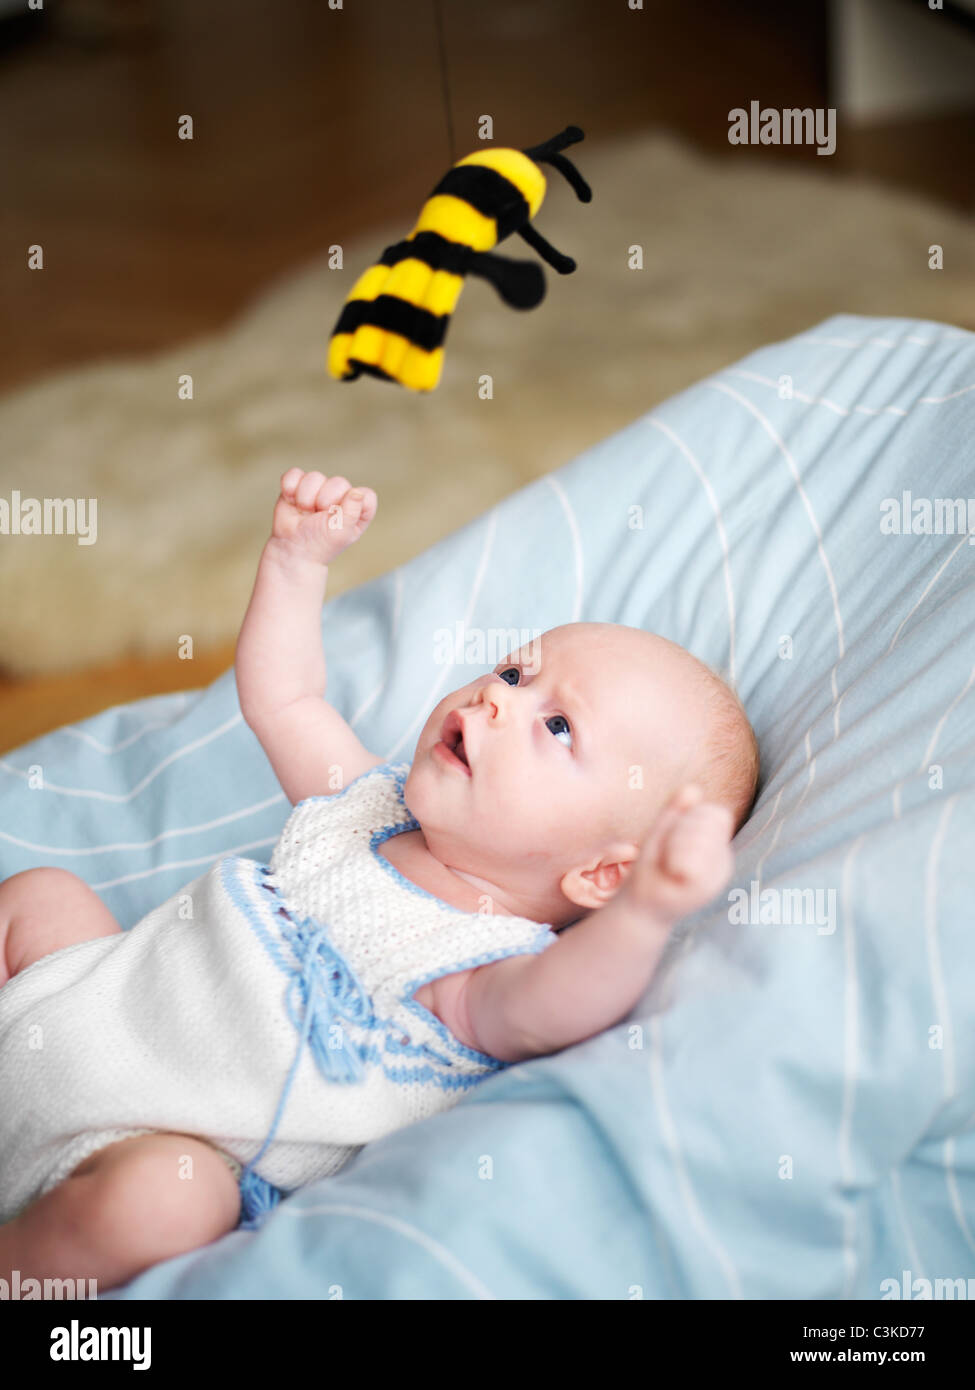 Baby playing with toy wasp - Stock Image